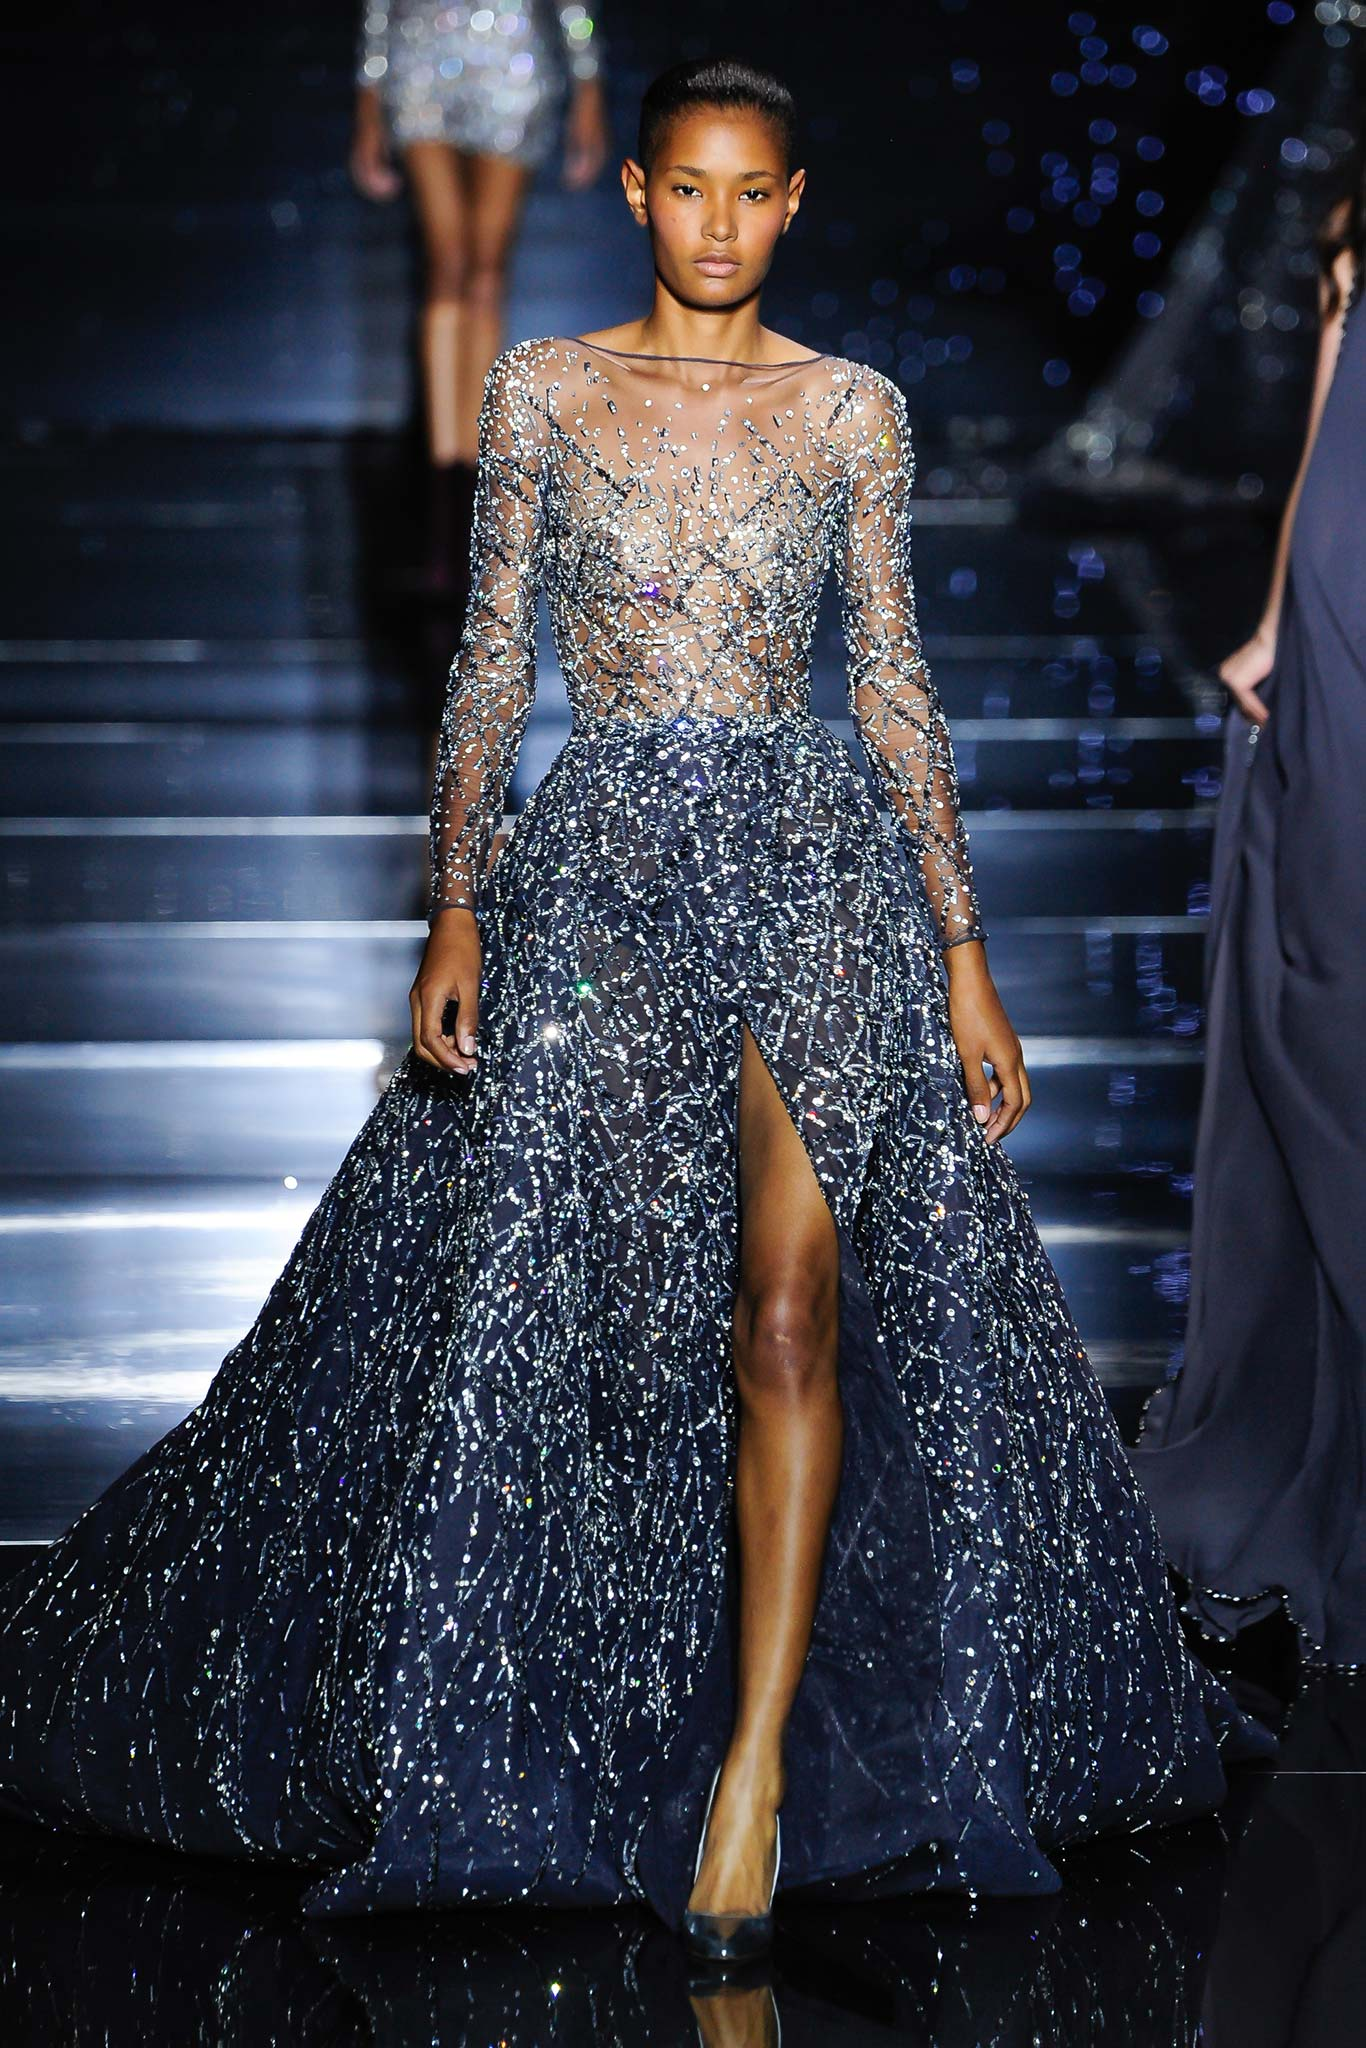 Zuhair murad haute couture f w 2015 paris graveravens for Hout couture